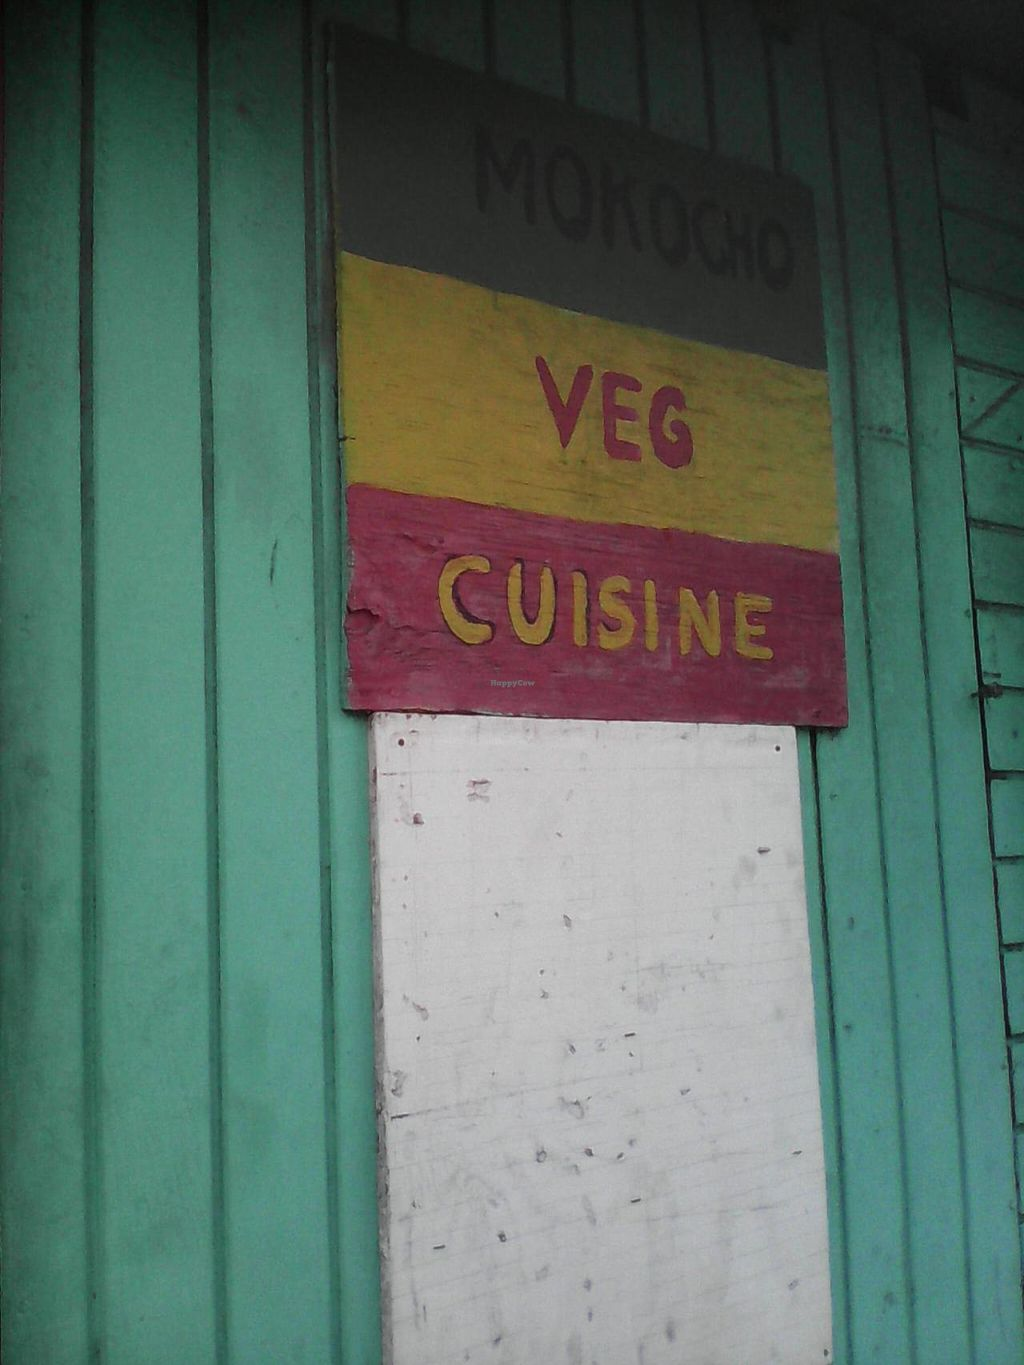 "Photo of Mokocho Cuisine  by <a href=""/members/profile/Laura%20Grainger"">Laura Grainger</a> <br/>Mokocho Veg Cuisine sign <br/> March 10, 2014  - <a href='/contact/abuse/image/45707/65626'>Report</a>"